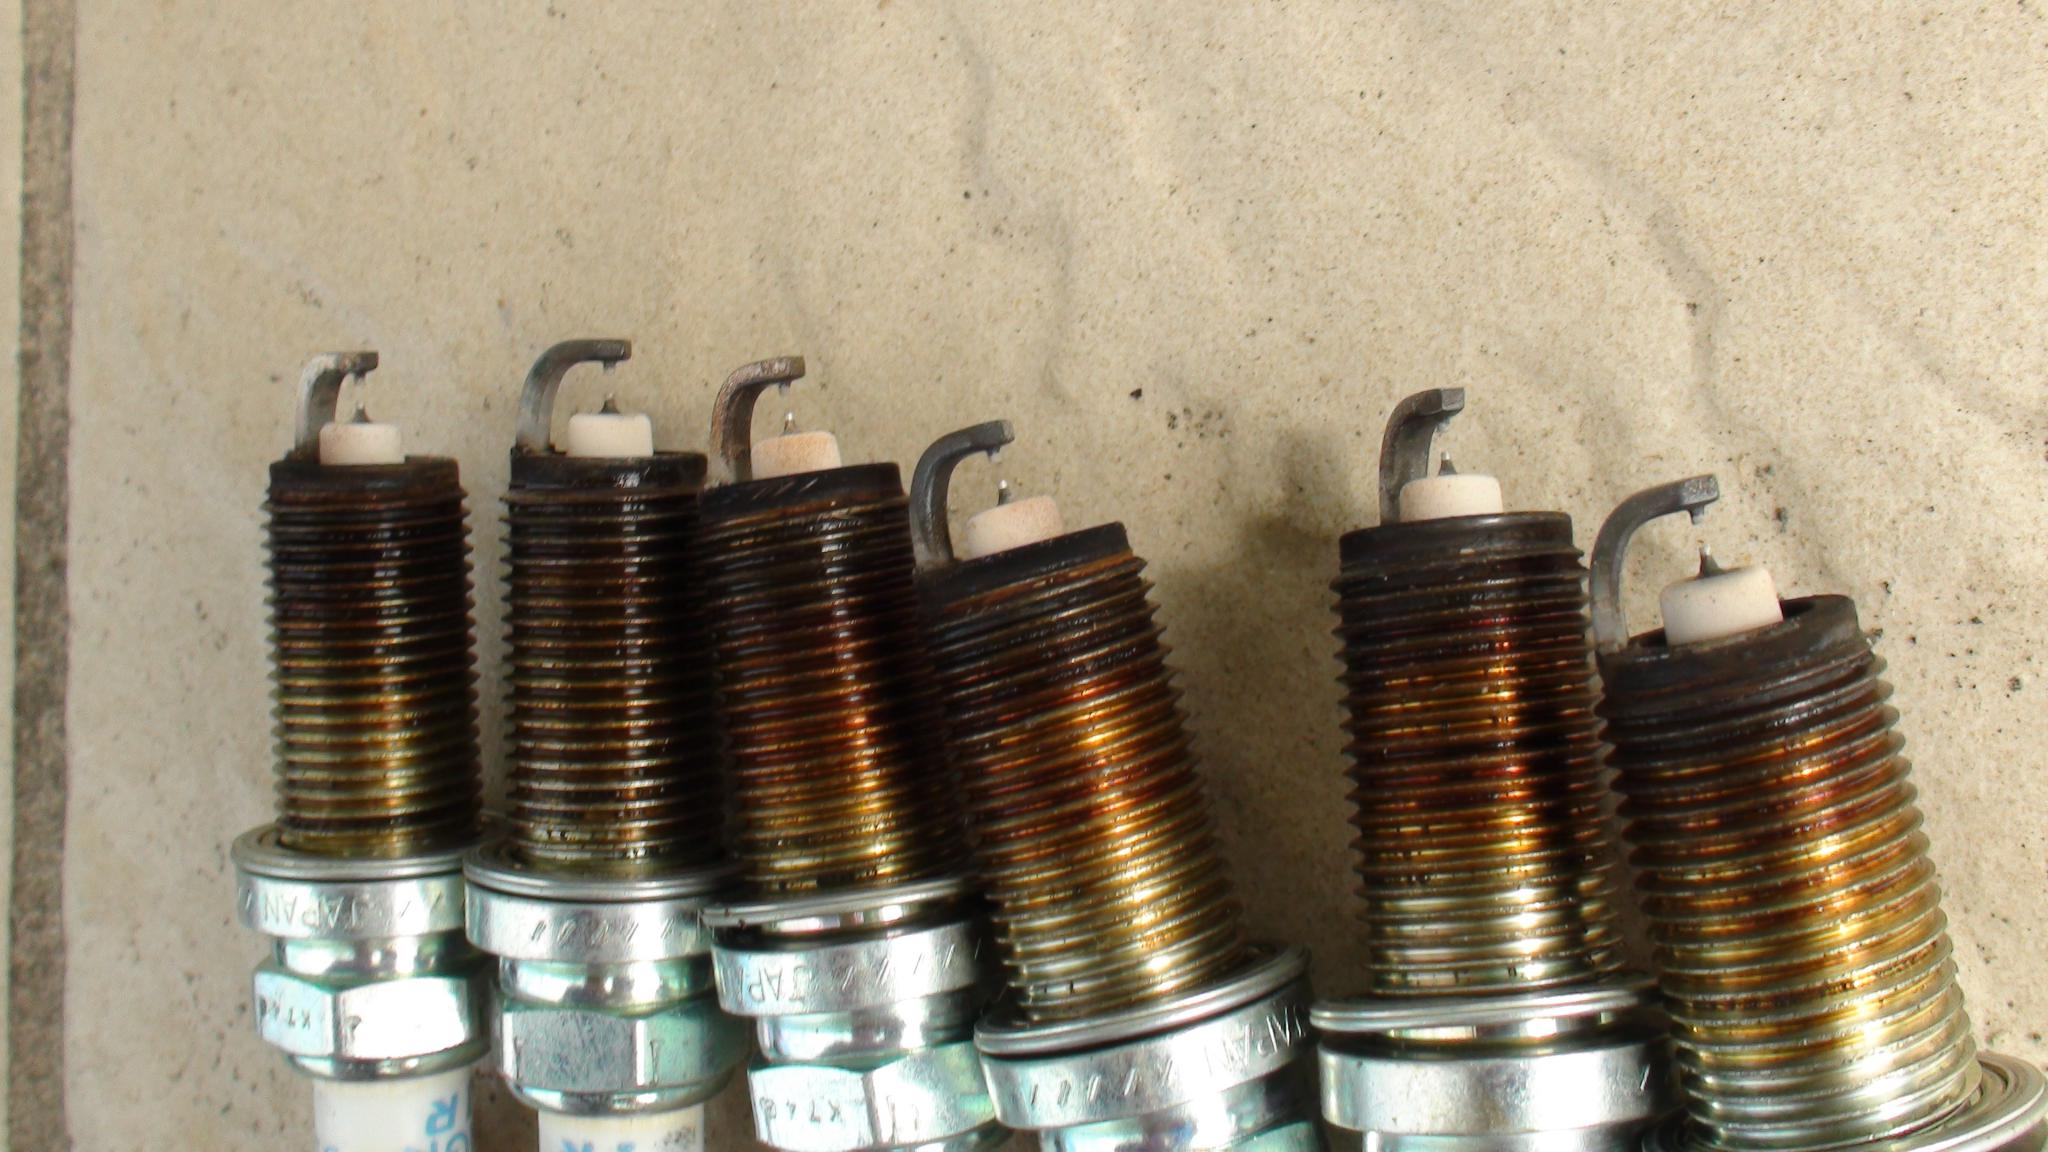 When To Change Spark Plugs >> 70k Spark Plug Change On 2nd Gen Should My Plugs Look Like This